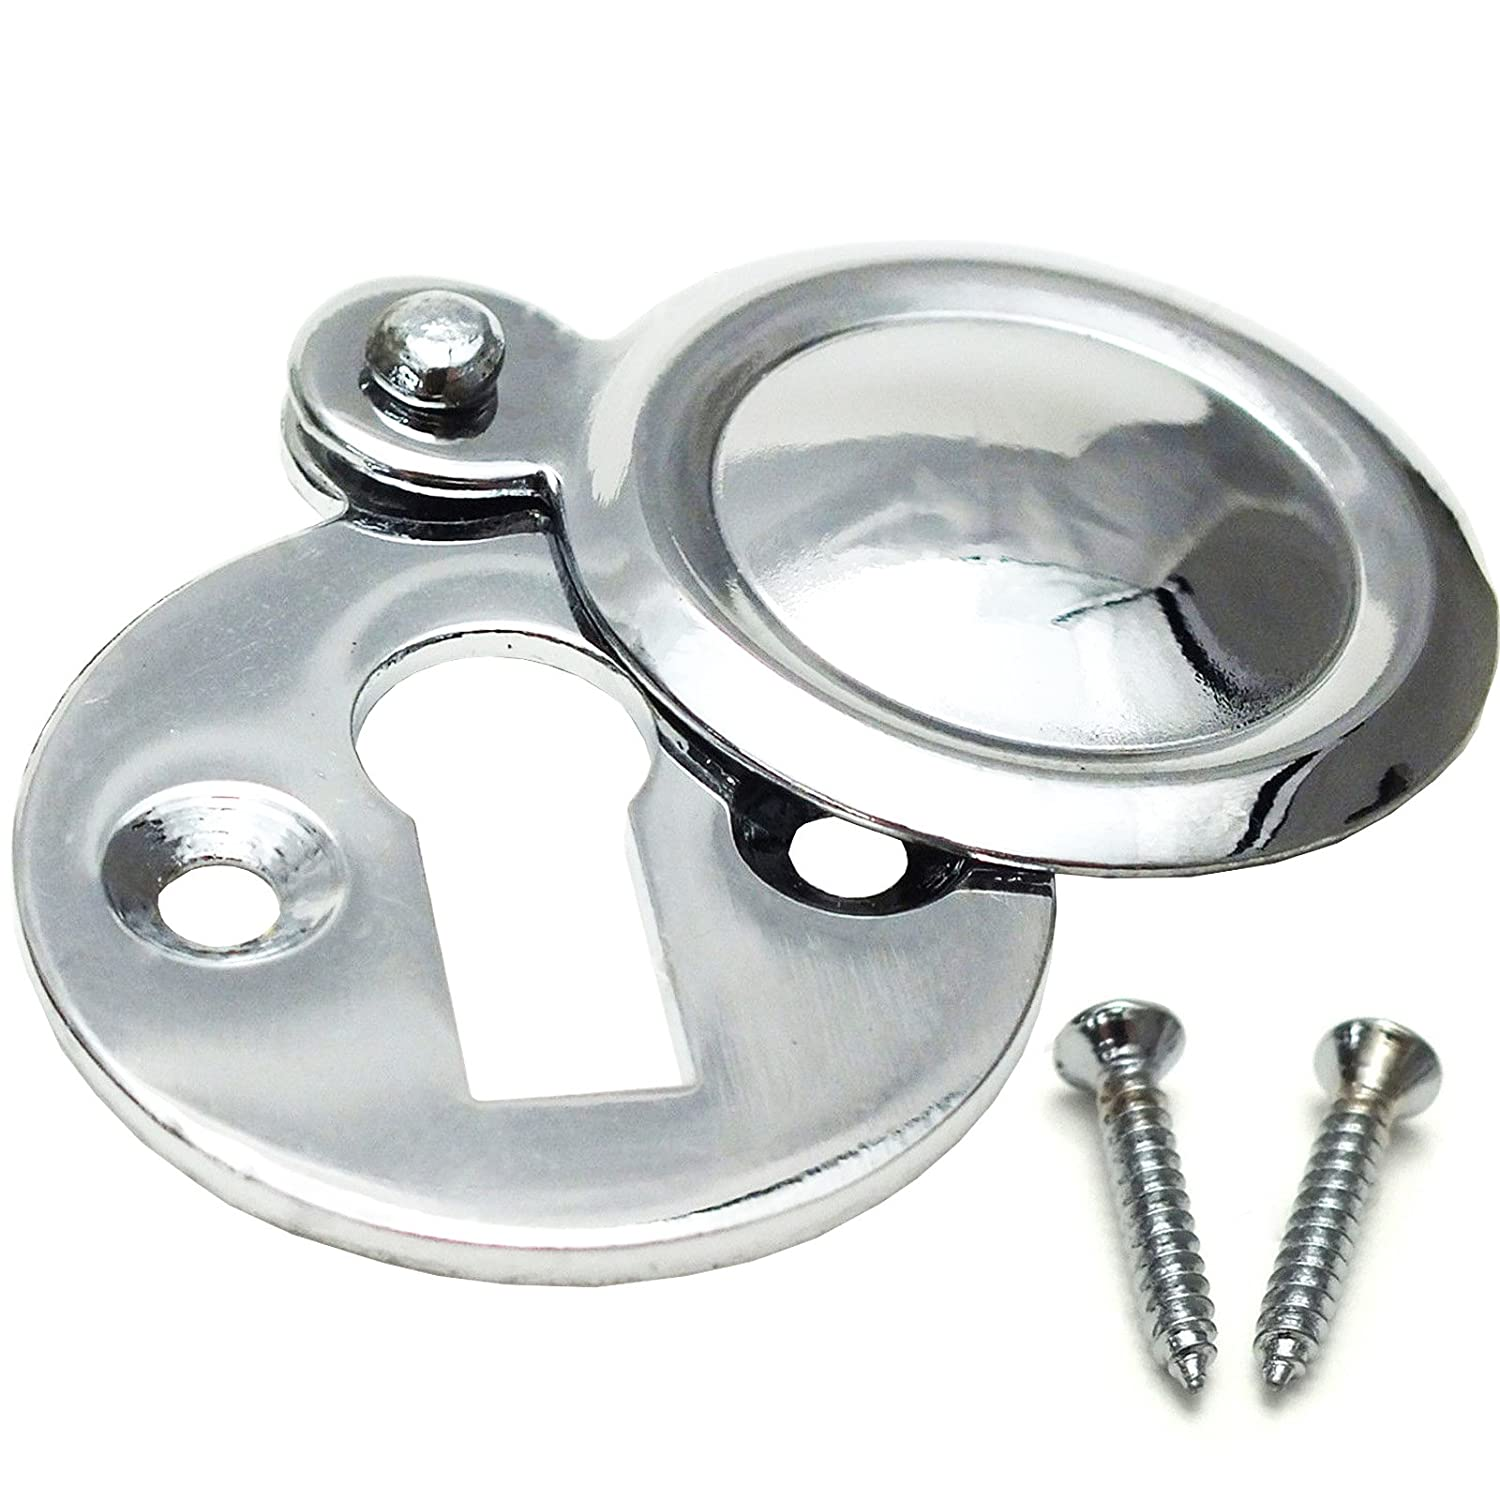 Chrome Covered Key Escutcheon - Round Front Main Door Keyhole - Plate Lock Cover White Hinge